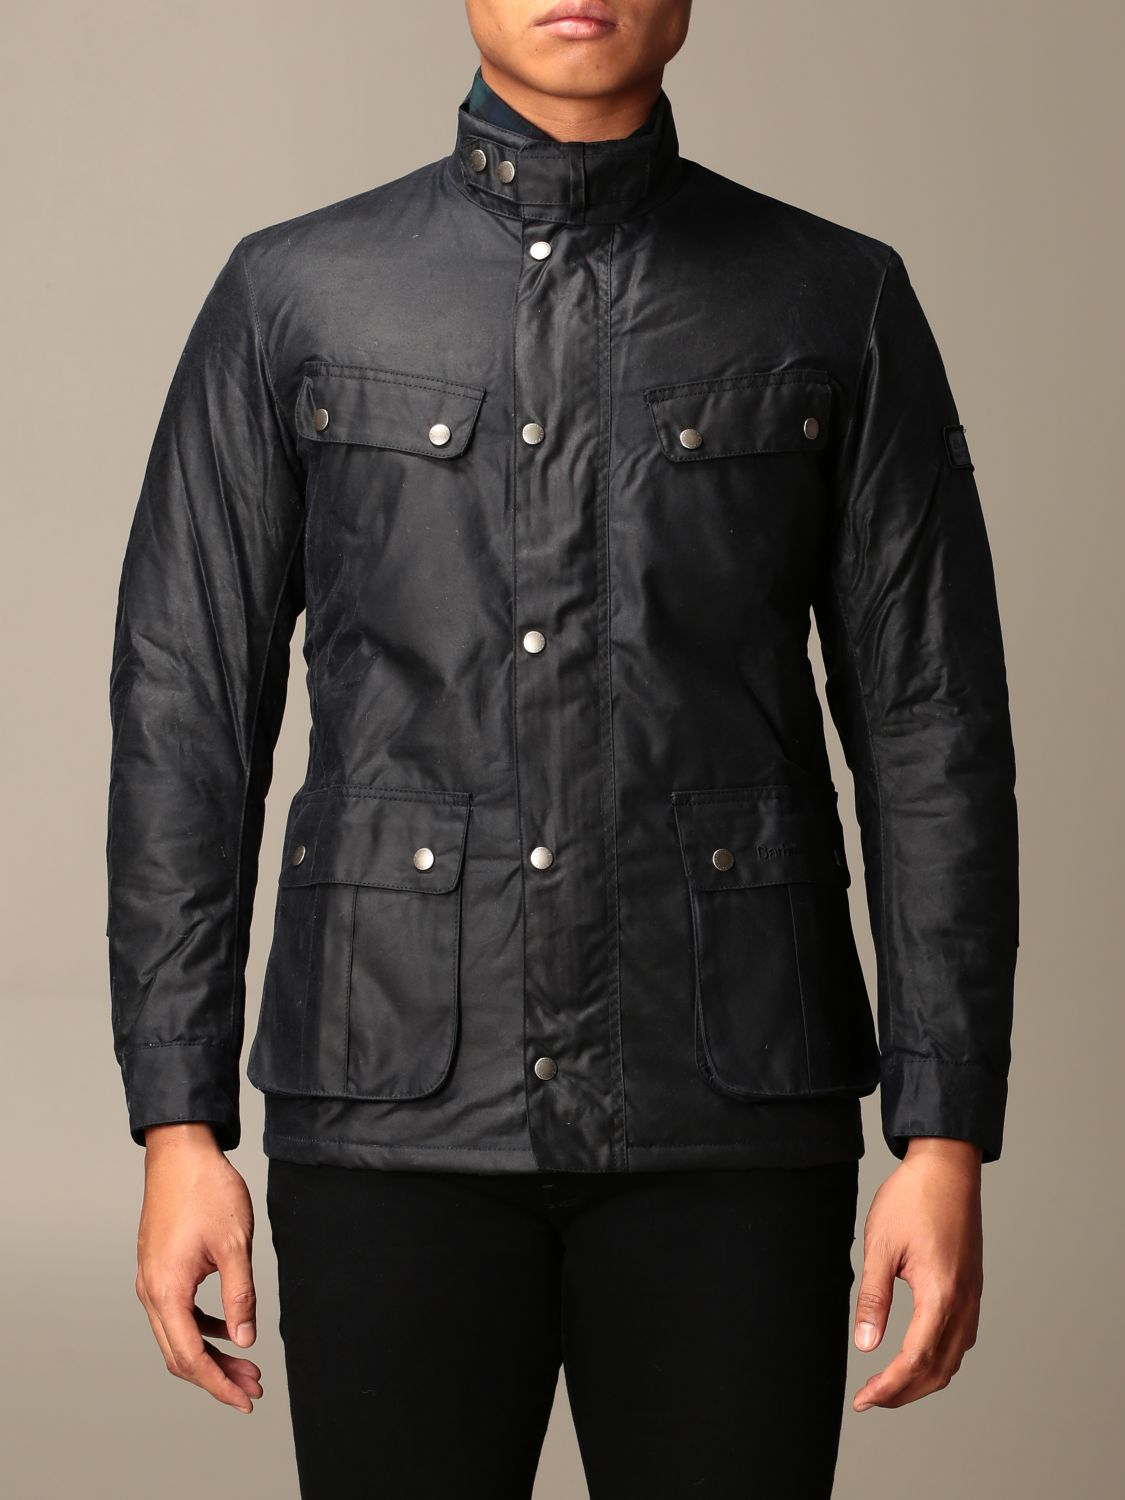 Jacket Barbour: Jacket men Barbour blue 1